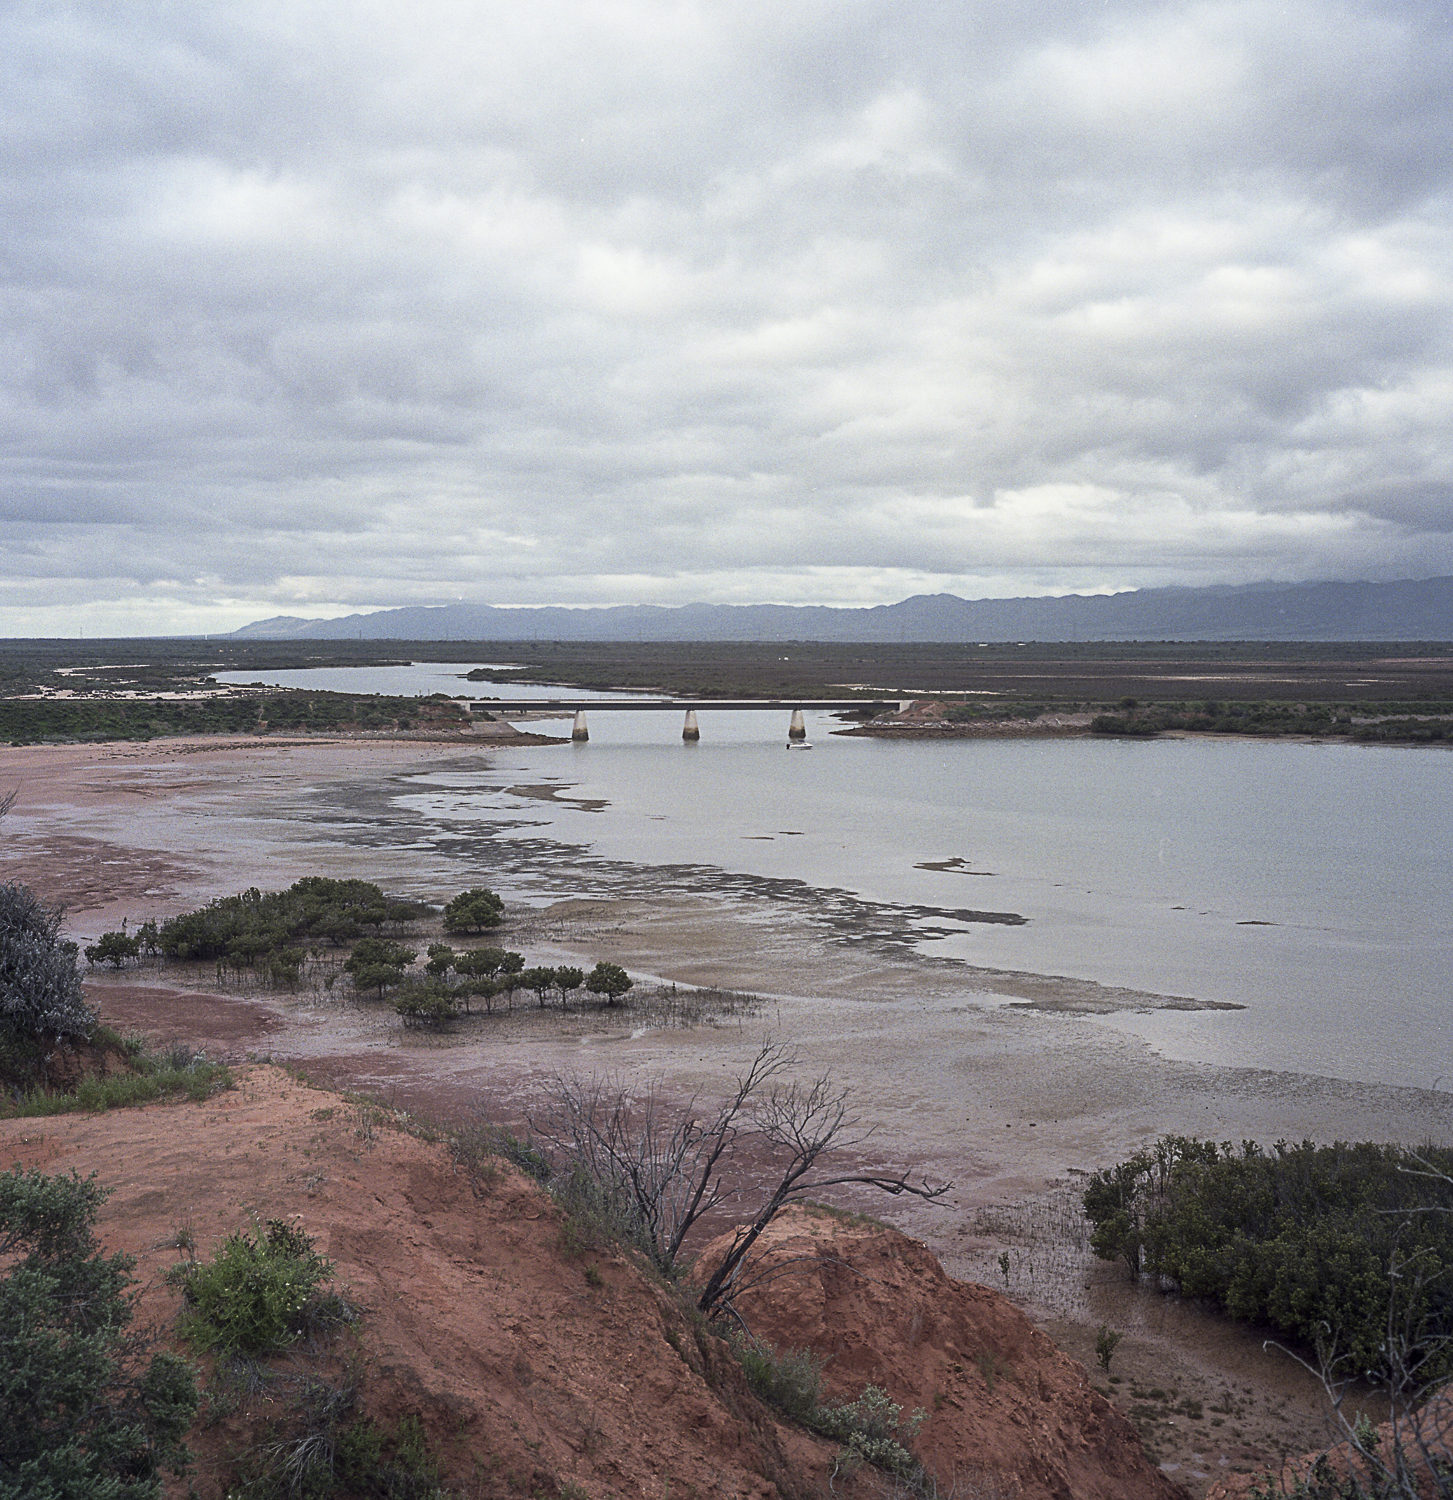 railway bridge, Port Augusta